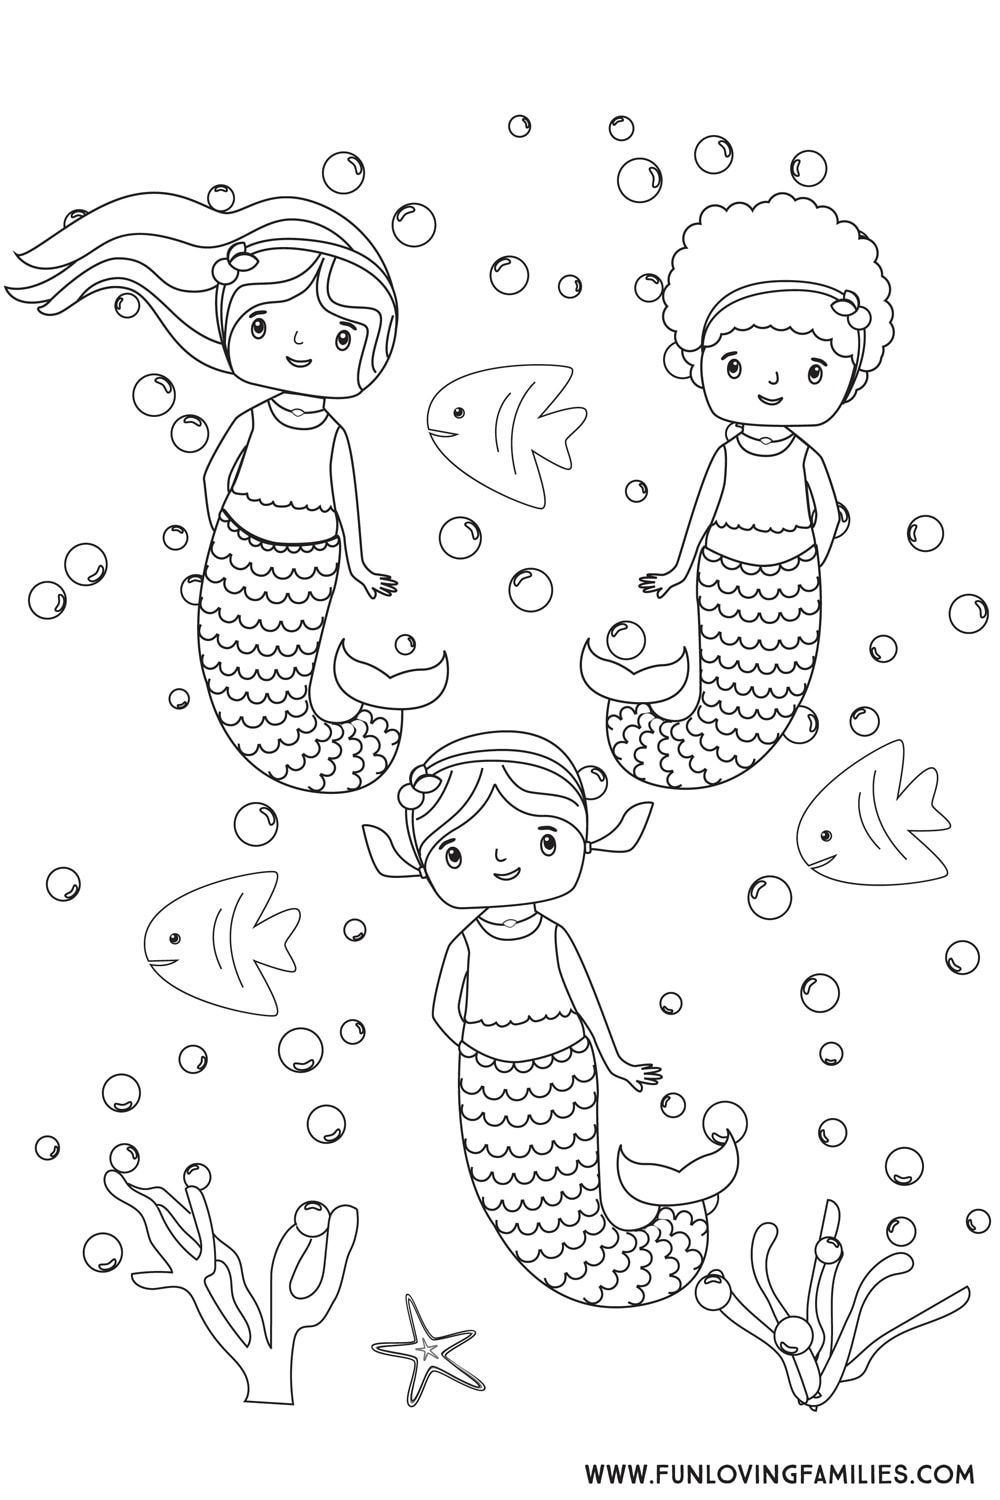 6 Cute Mermaid Coloring Pages For Kids Free Printables Fun Loving Families Mermaid Coloring Pages Mermaid Coloring Printables Free Kids